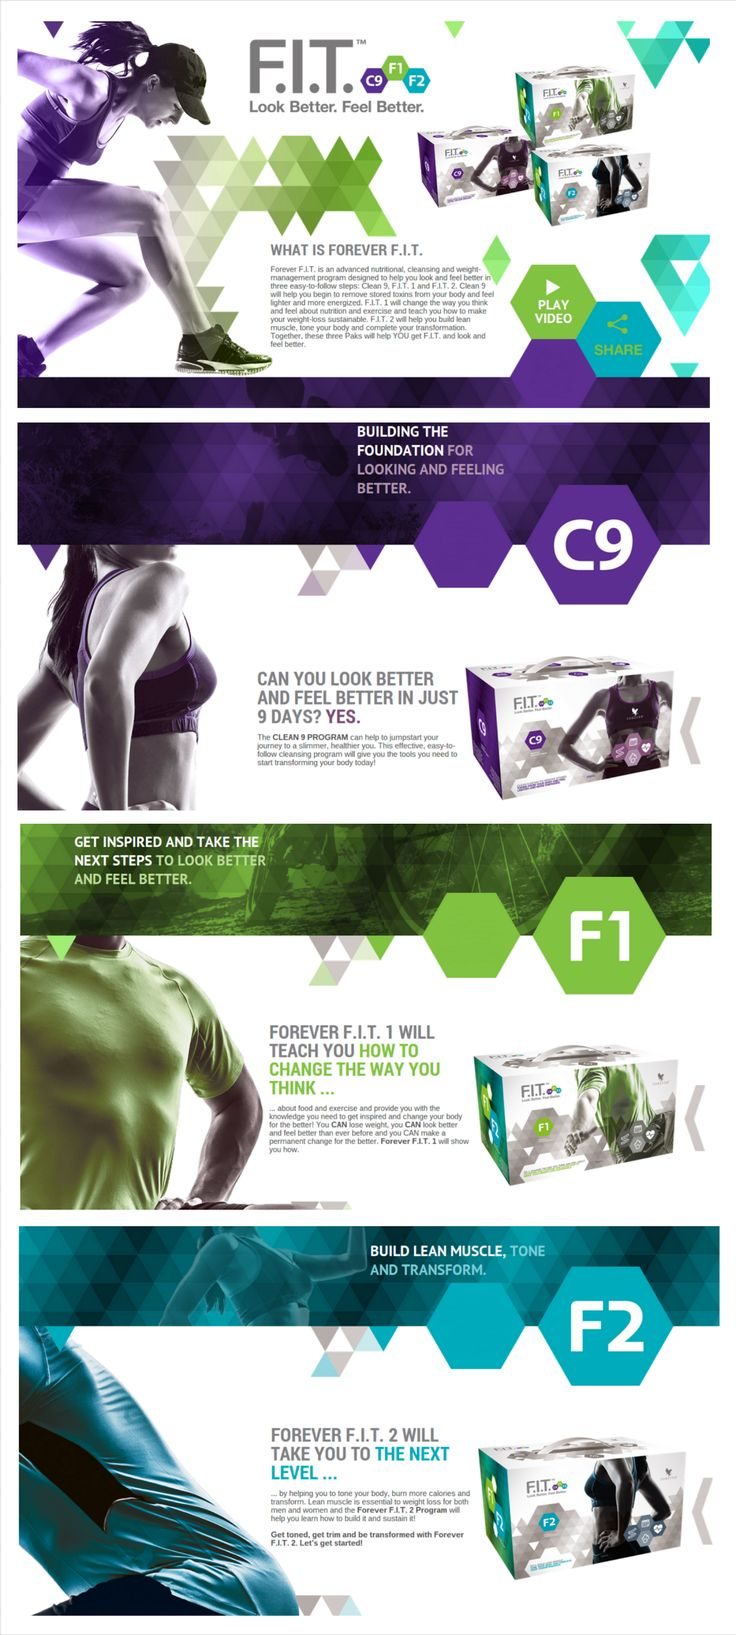 SO excited, the secret is out! For a while we have been hinting towards a new program that has been giving us incredible results. Forever F.I.T. is an advanced nutritional, cleansing and weight-loss program designed to help you look and feel better in three easy-to-follow steps: Clean 9, F.I.T. 1 and F.I.T. 2. For more information email me vikkiberg@live.co.uk